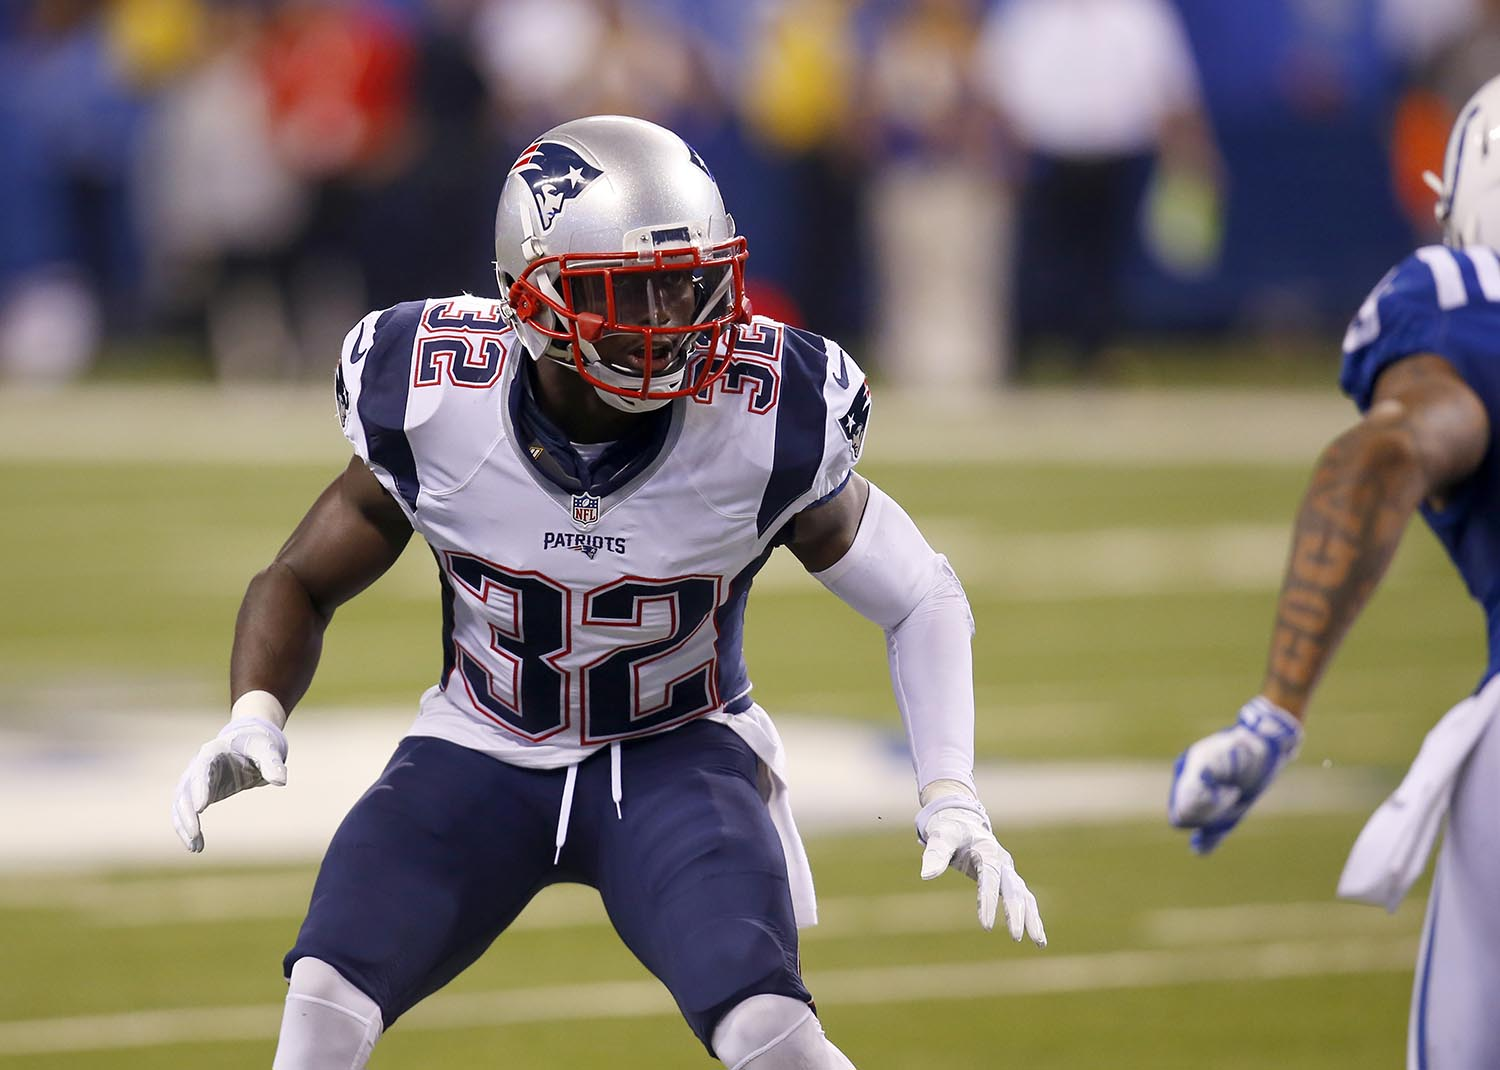 """<div class=""""meta image-caption""""><div class=""""origin-logo origin-image ap""""><span>AP</span></div><span class=""""caption-text"""">New England Patriots' free safety Devin McCourty is a native of Nyack, NY and also attended Rutgers University in New Brunswick, NJ. (Jeff Haynes/AP Images for Panini)</span></div>"""